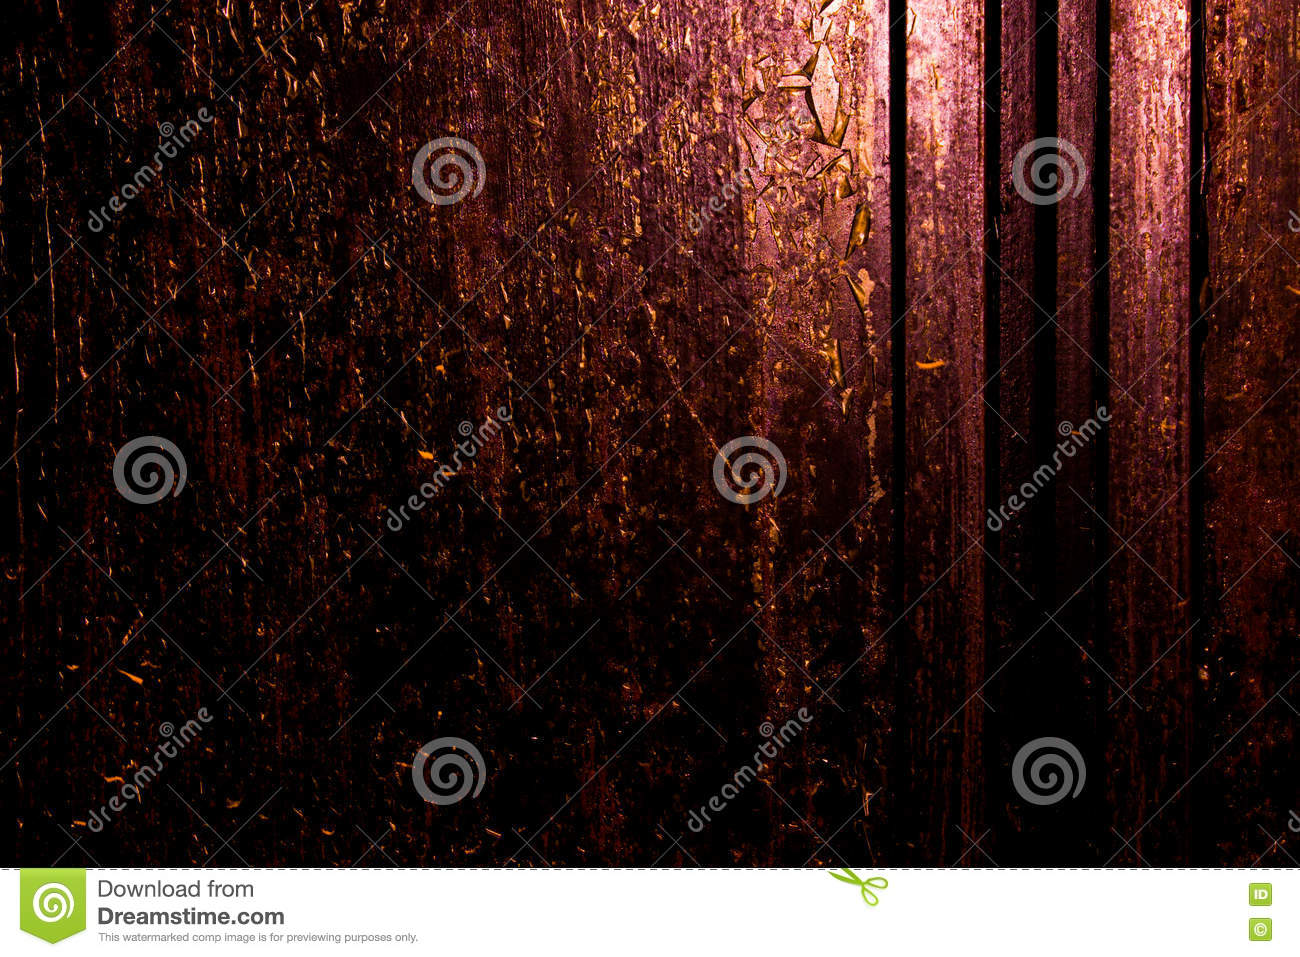 dark old scary rusty rough golden and copper metal surface texturebackground for halloween or haunted house games backgroundtexture of wall